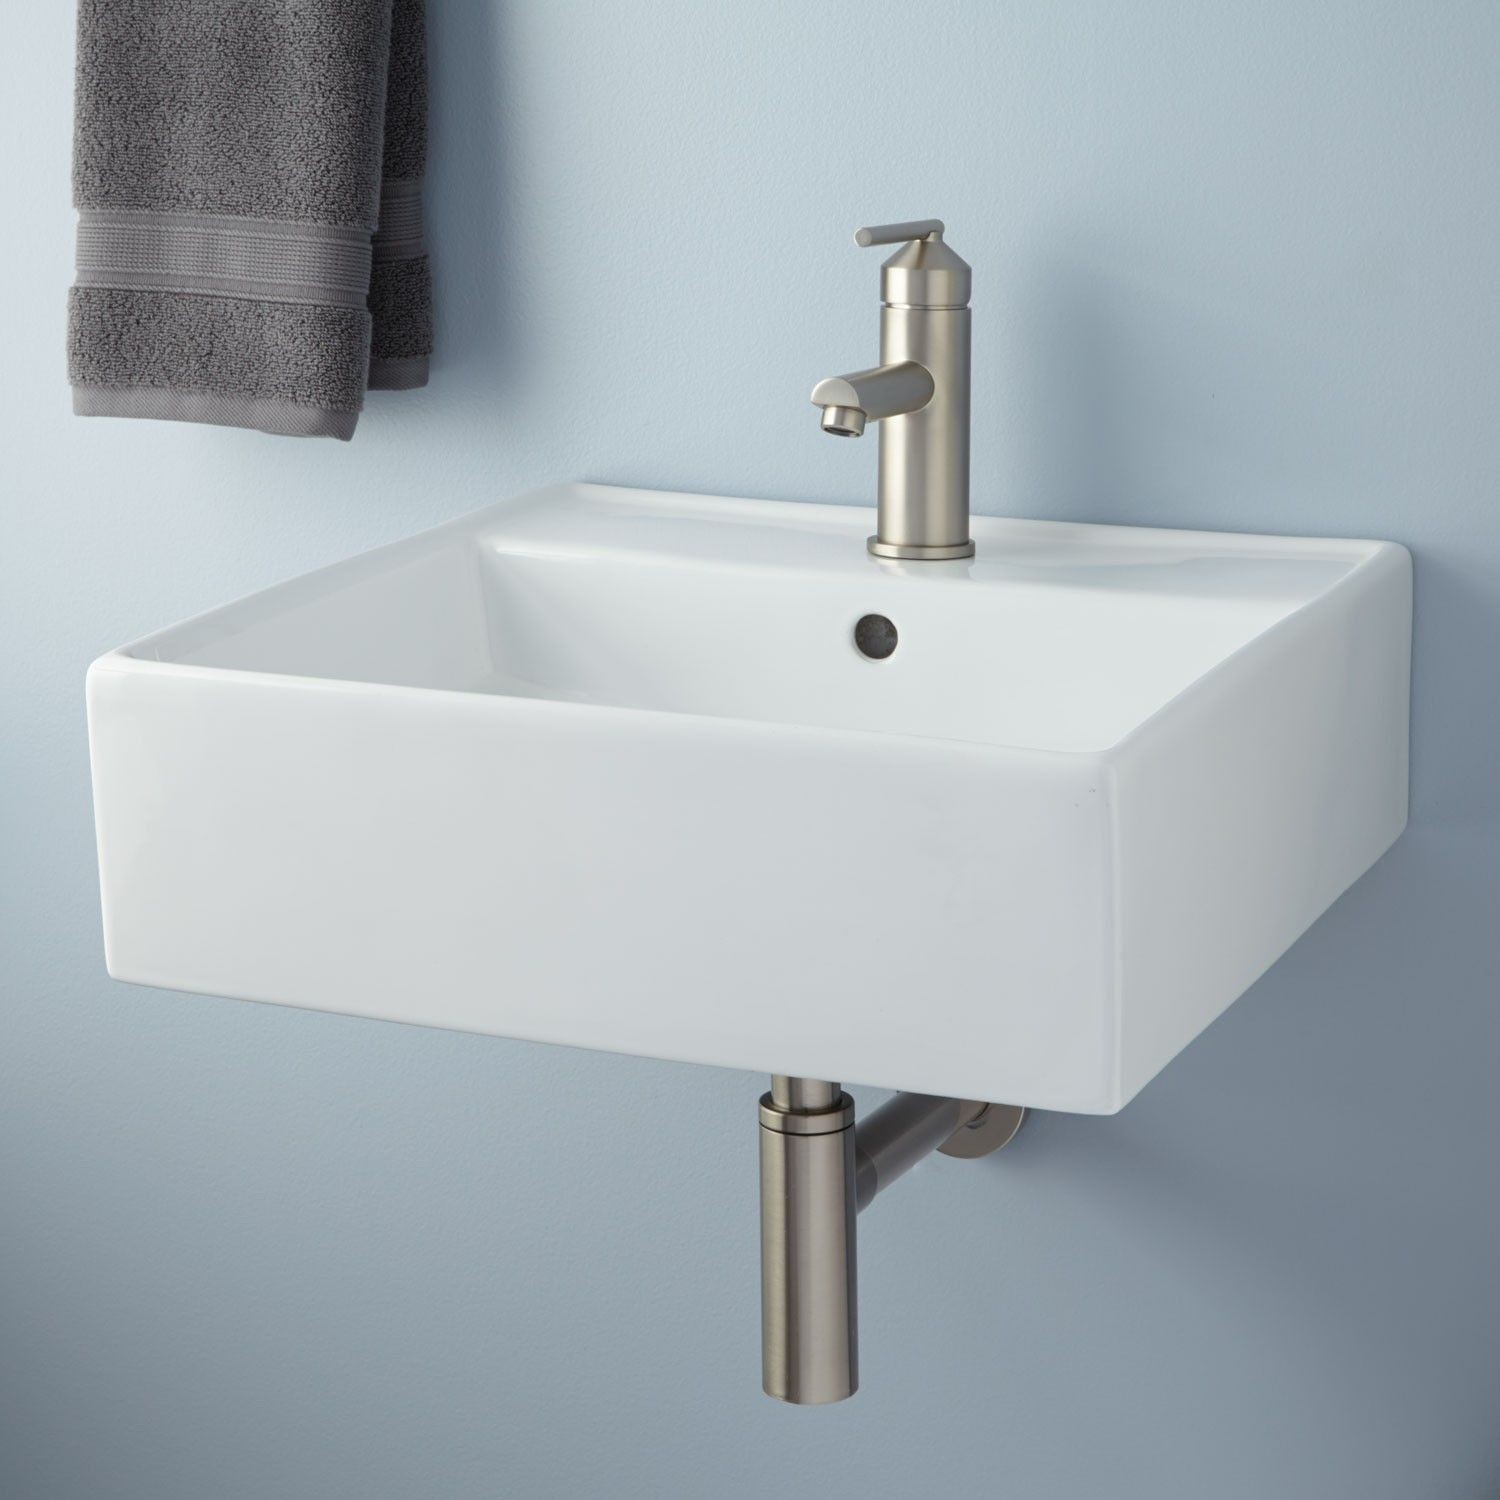 Bathroom Wall Sink Modern Audrie Wall Mount Bathroom Sink Collection